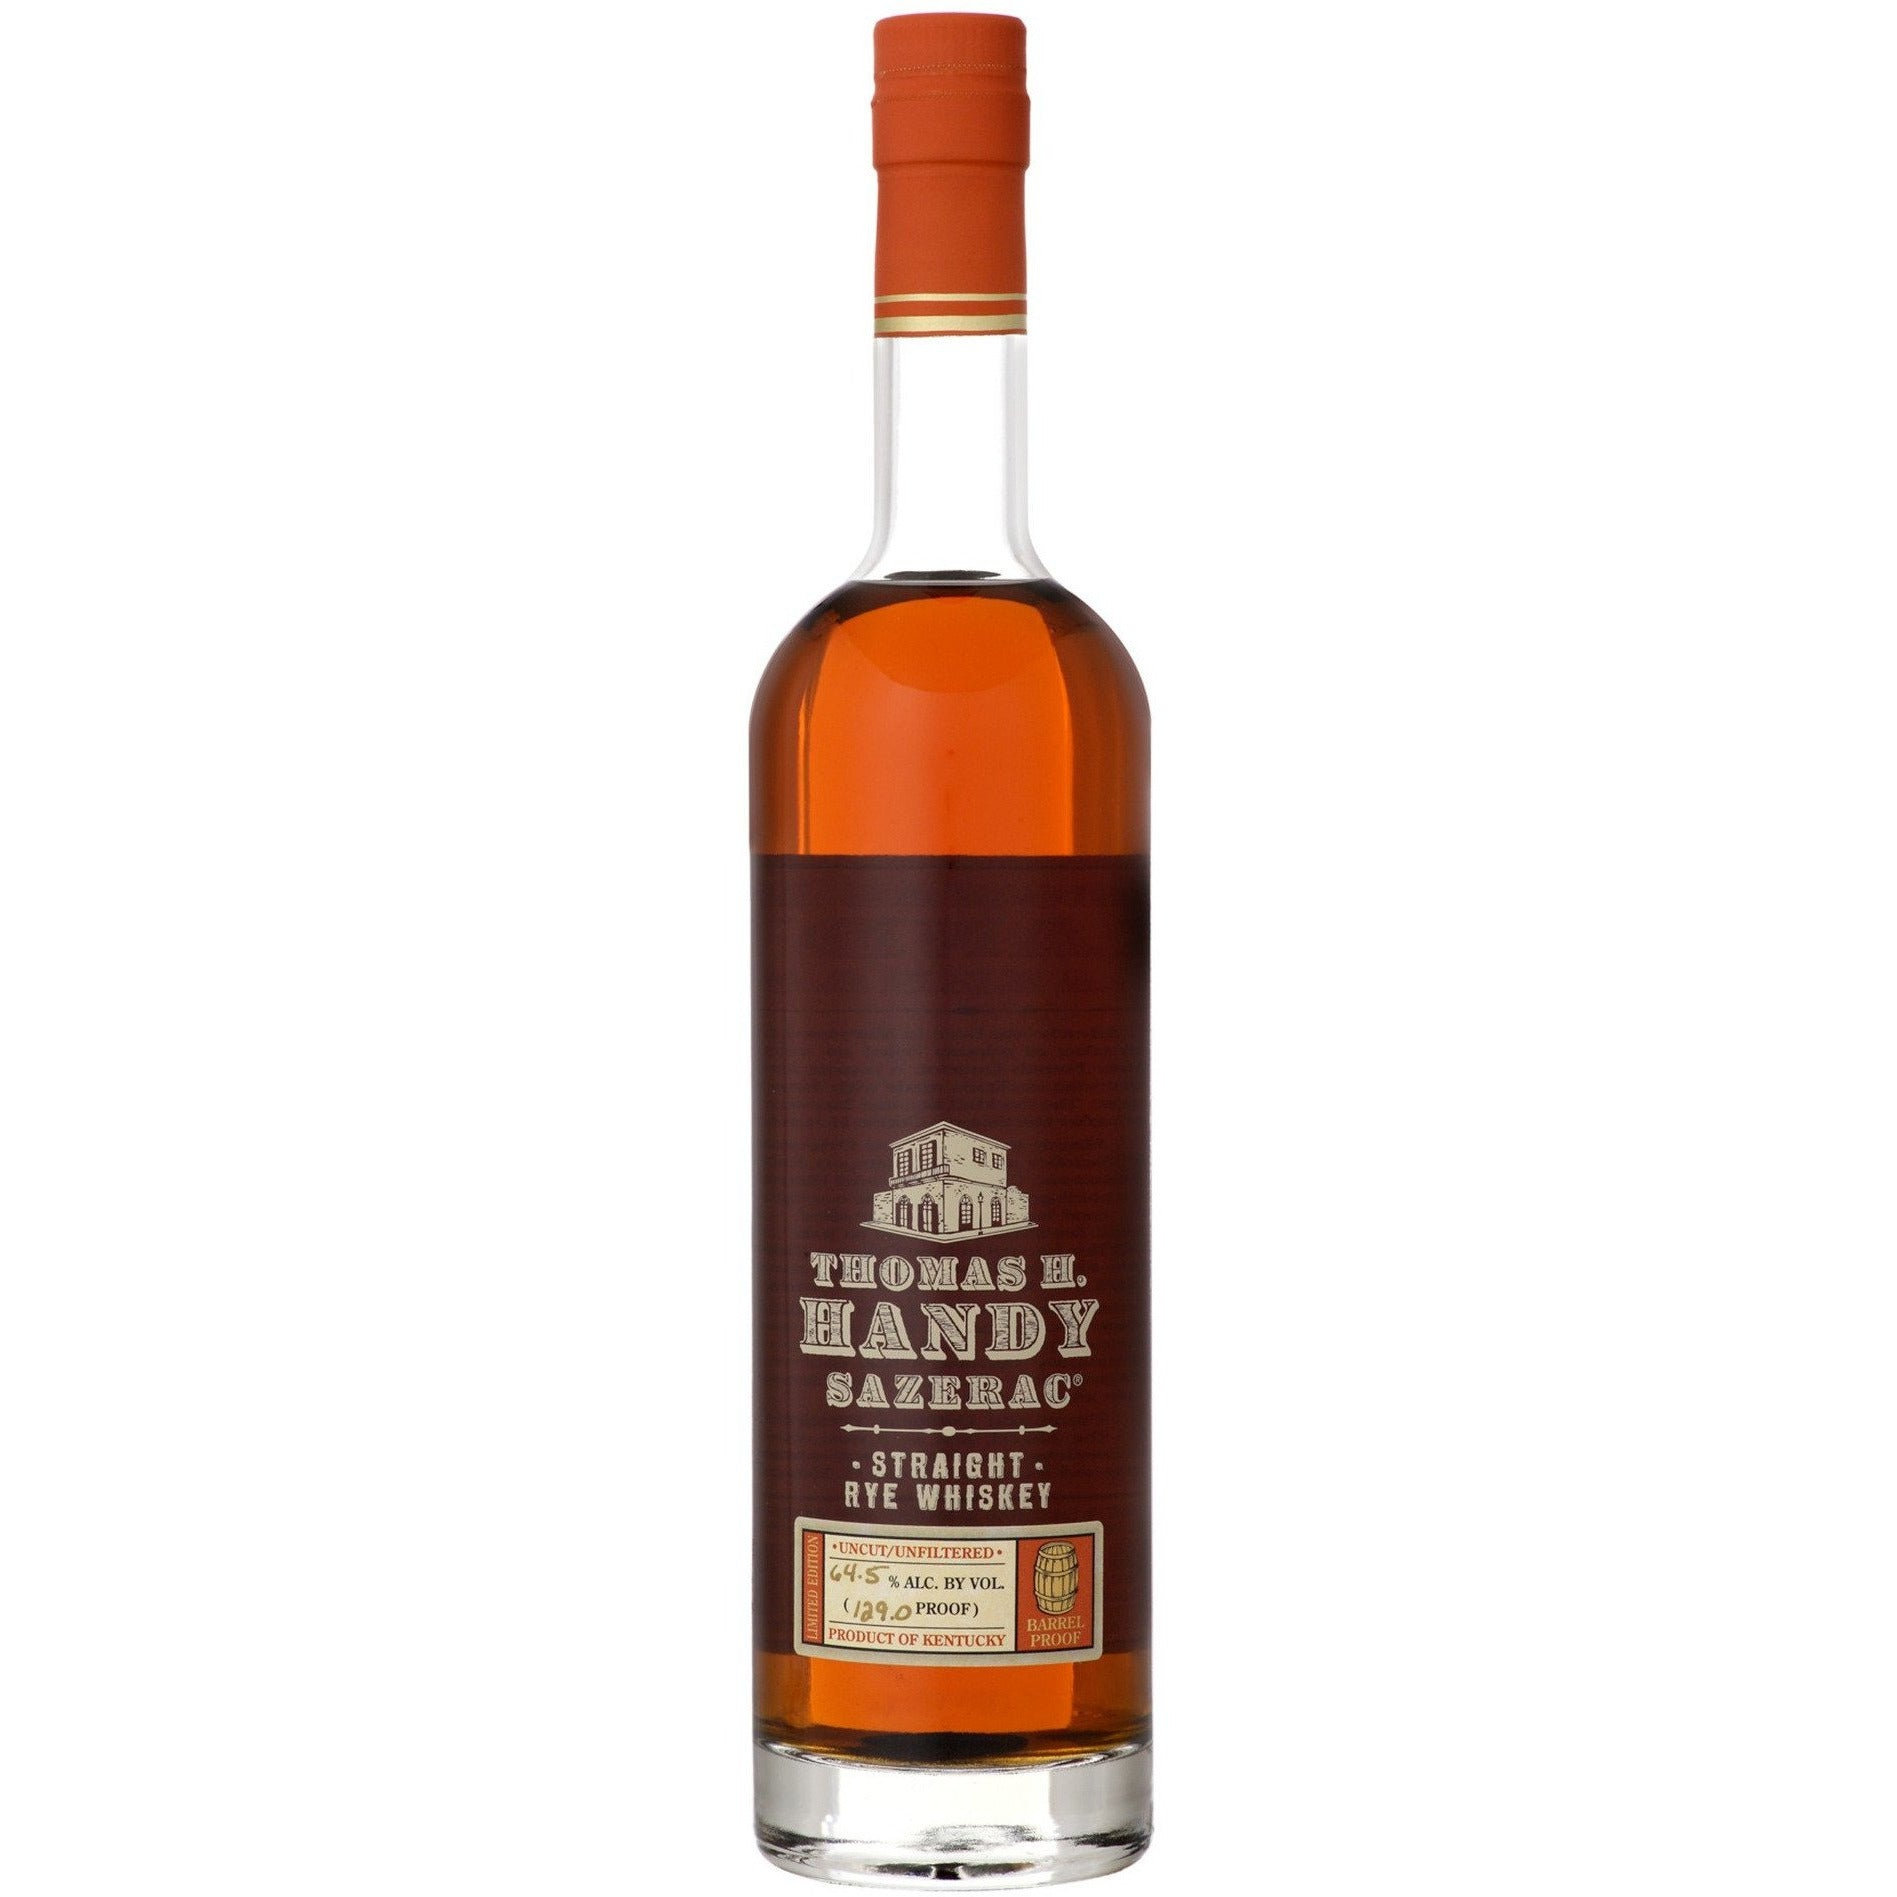 Thomas H. Handy Sazerac Straight Rye Whiskey (750 ML)